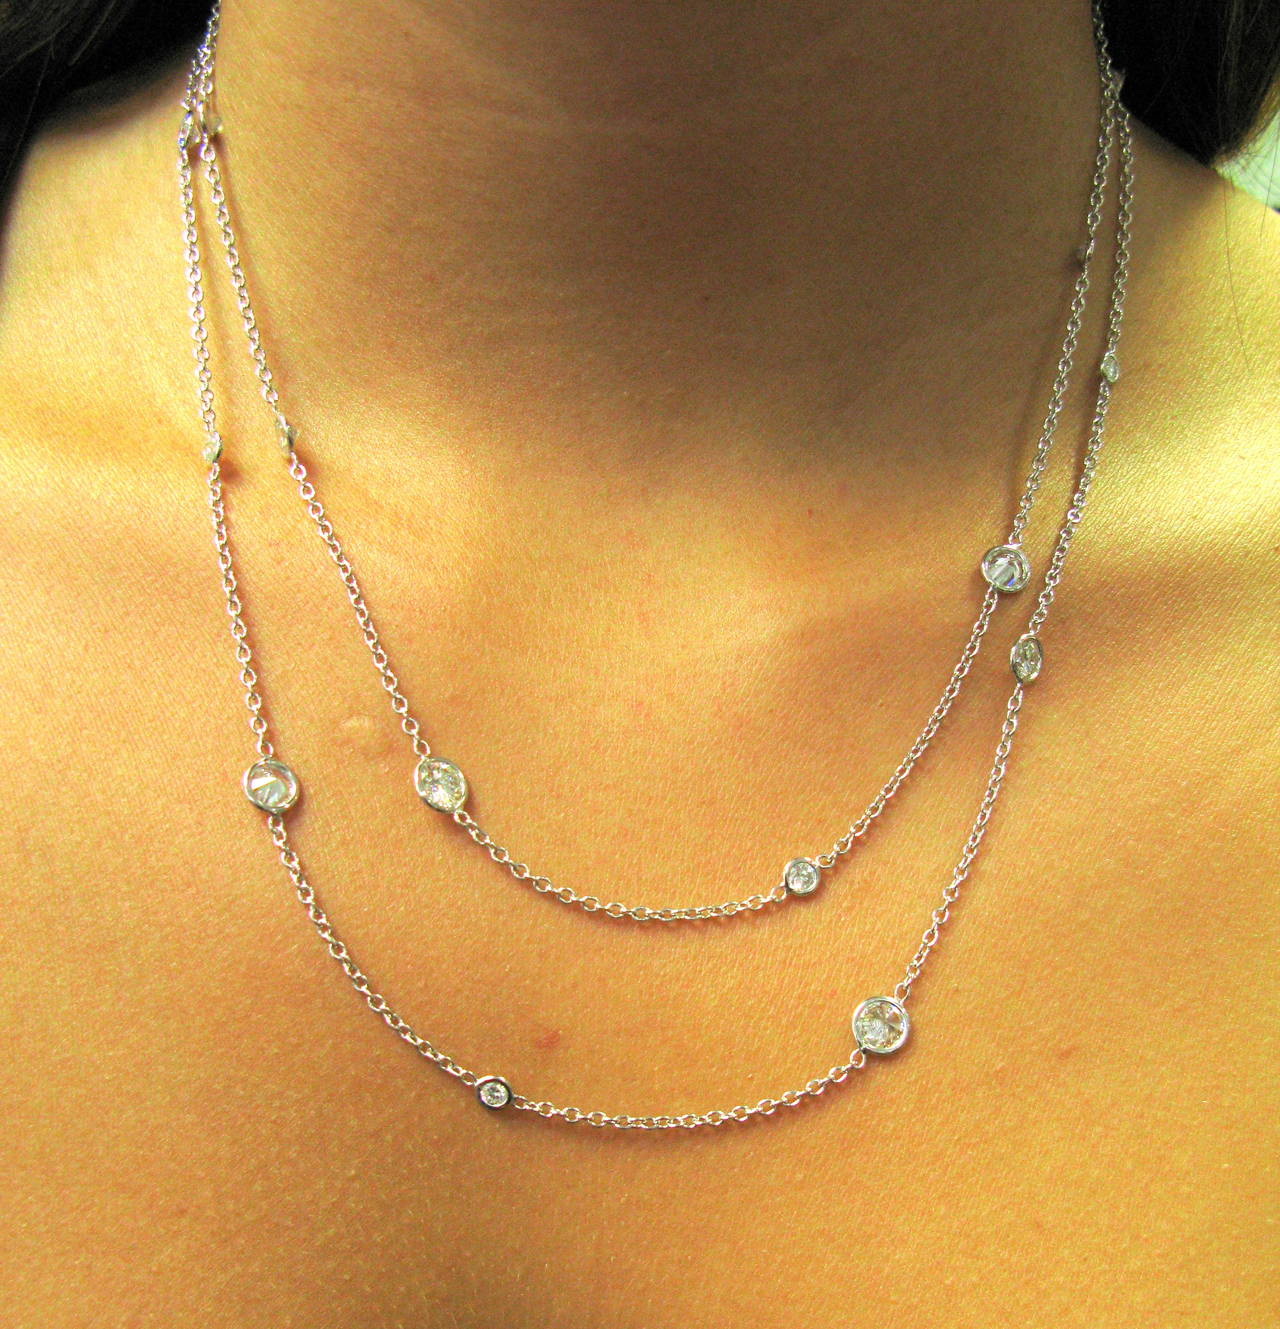 Women's 7.76 Carats Diamonds By The Yard Gold Necklace For Sale